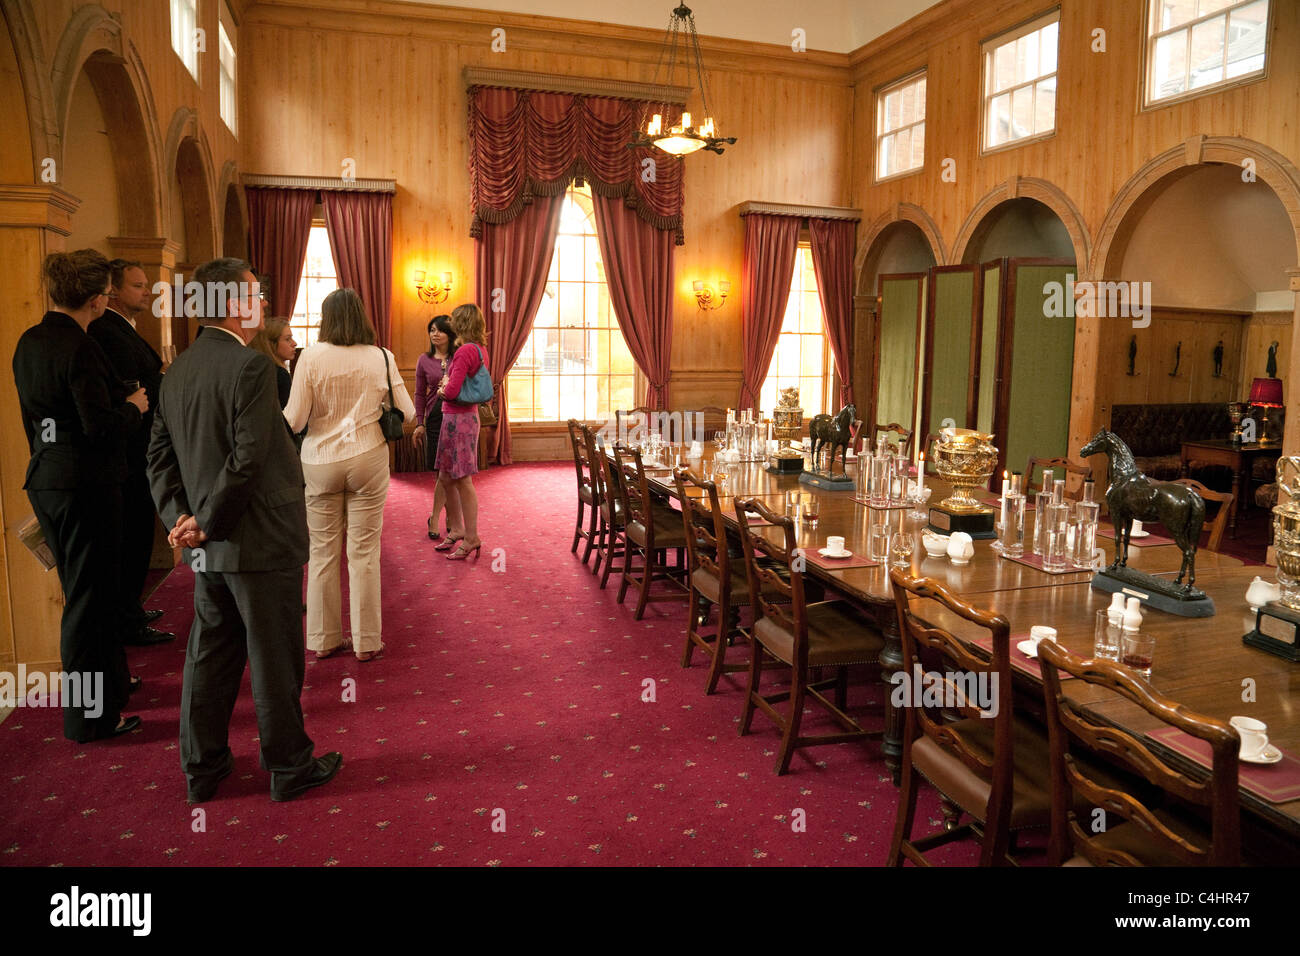 The Coffee Room, inside the Jockey Club, Newmarket Suffolk UK - Stock Image